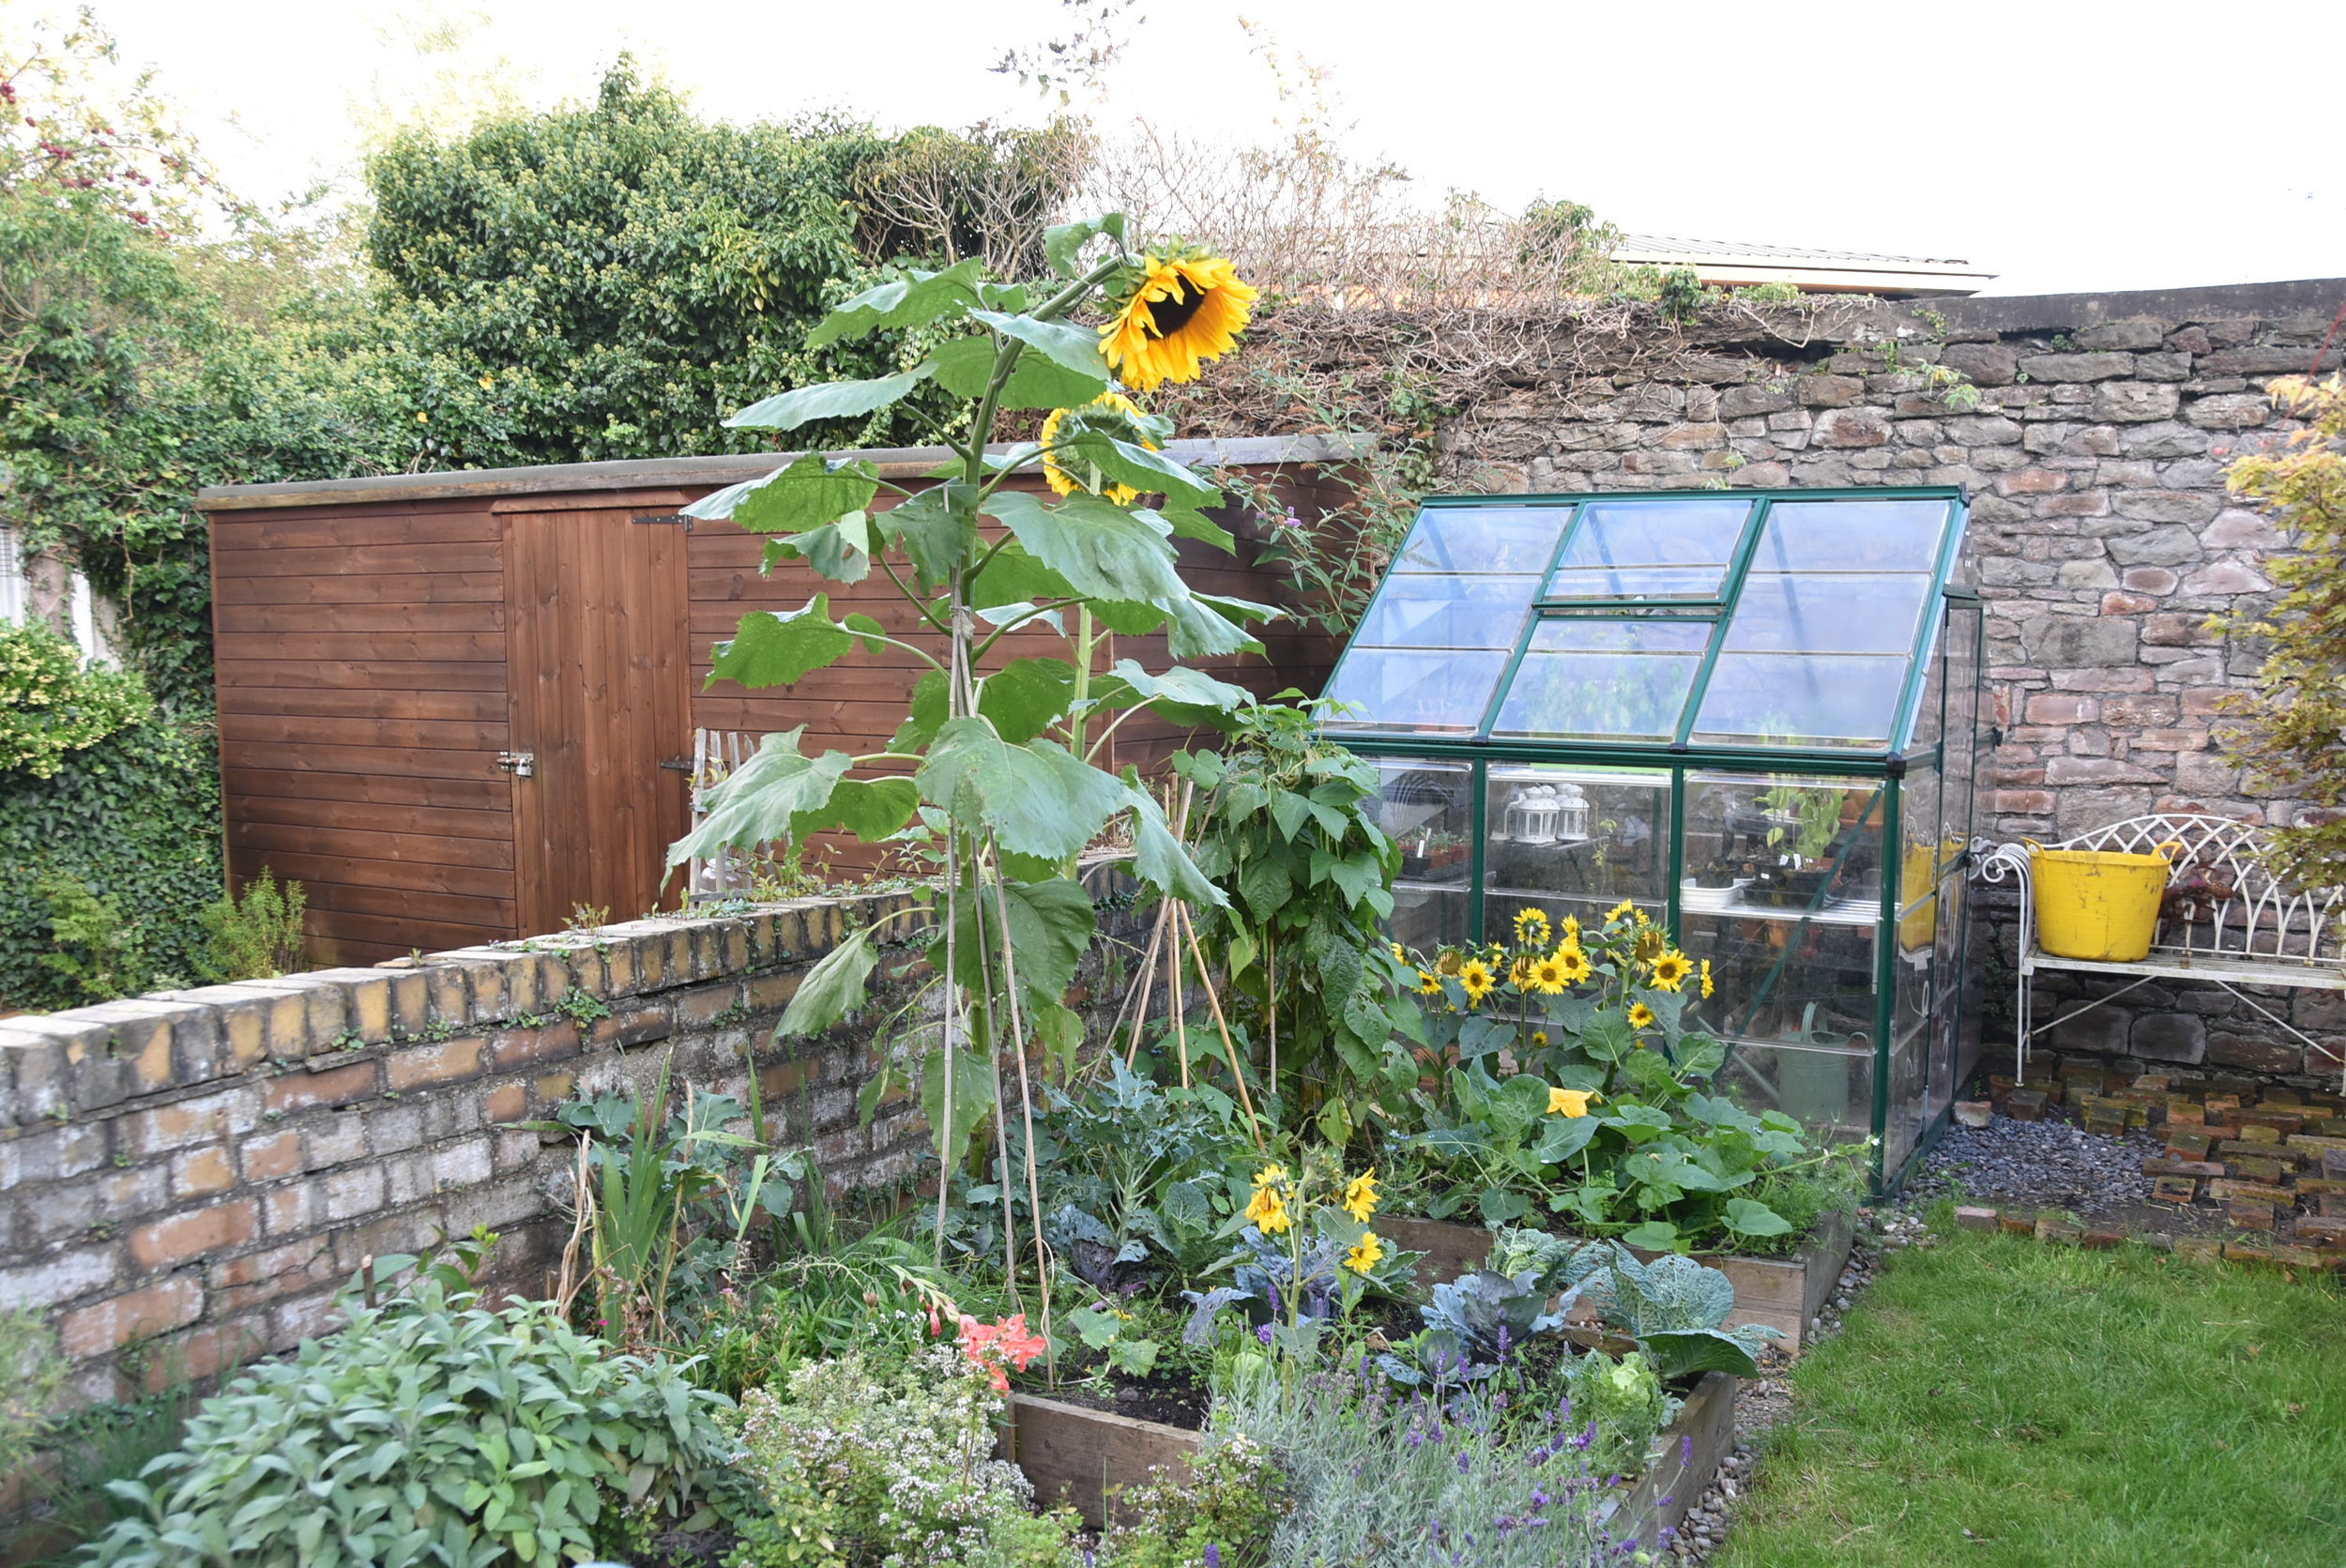 Sunflowers in our urban garden